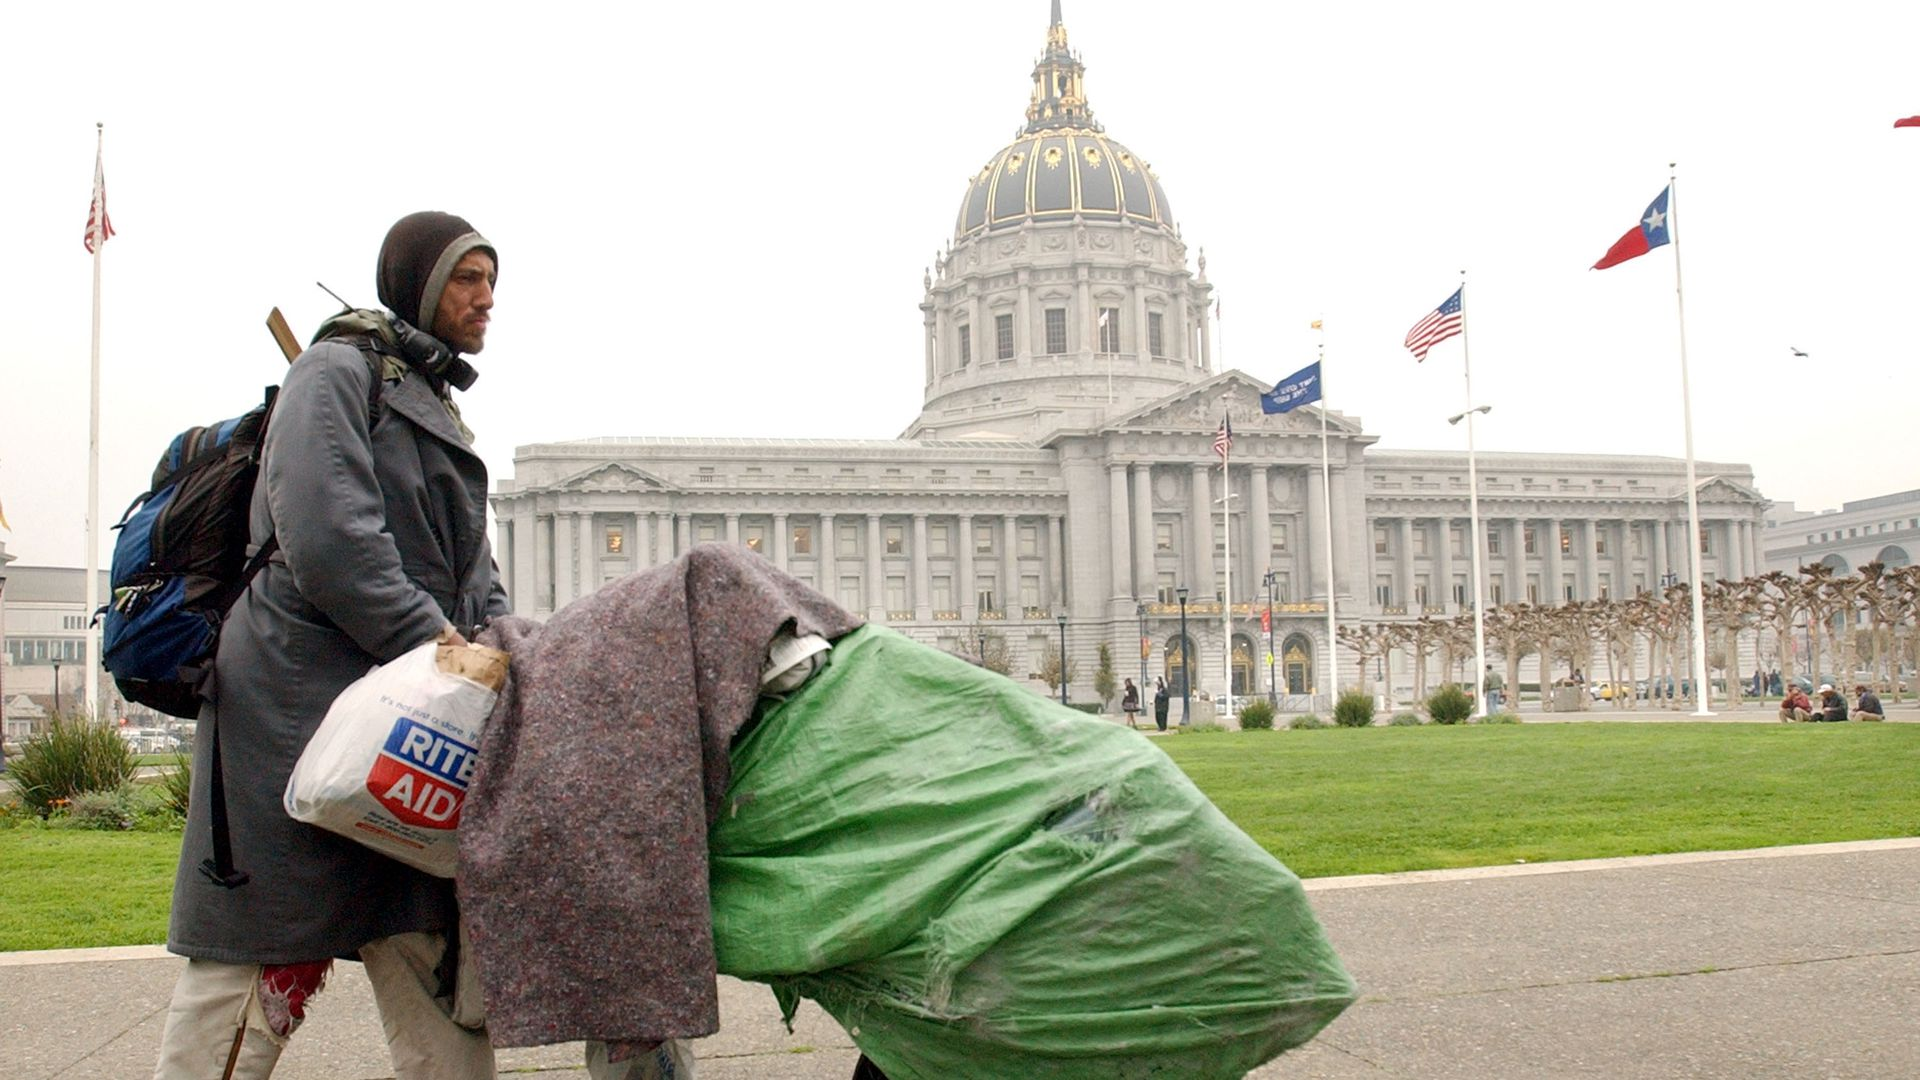 Homeless man pushes green rolly bag in front of San Francisco City Hall dome.